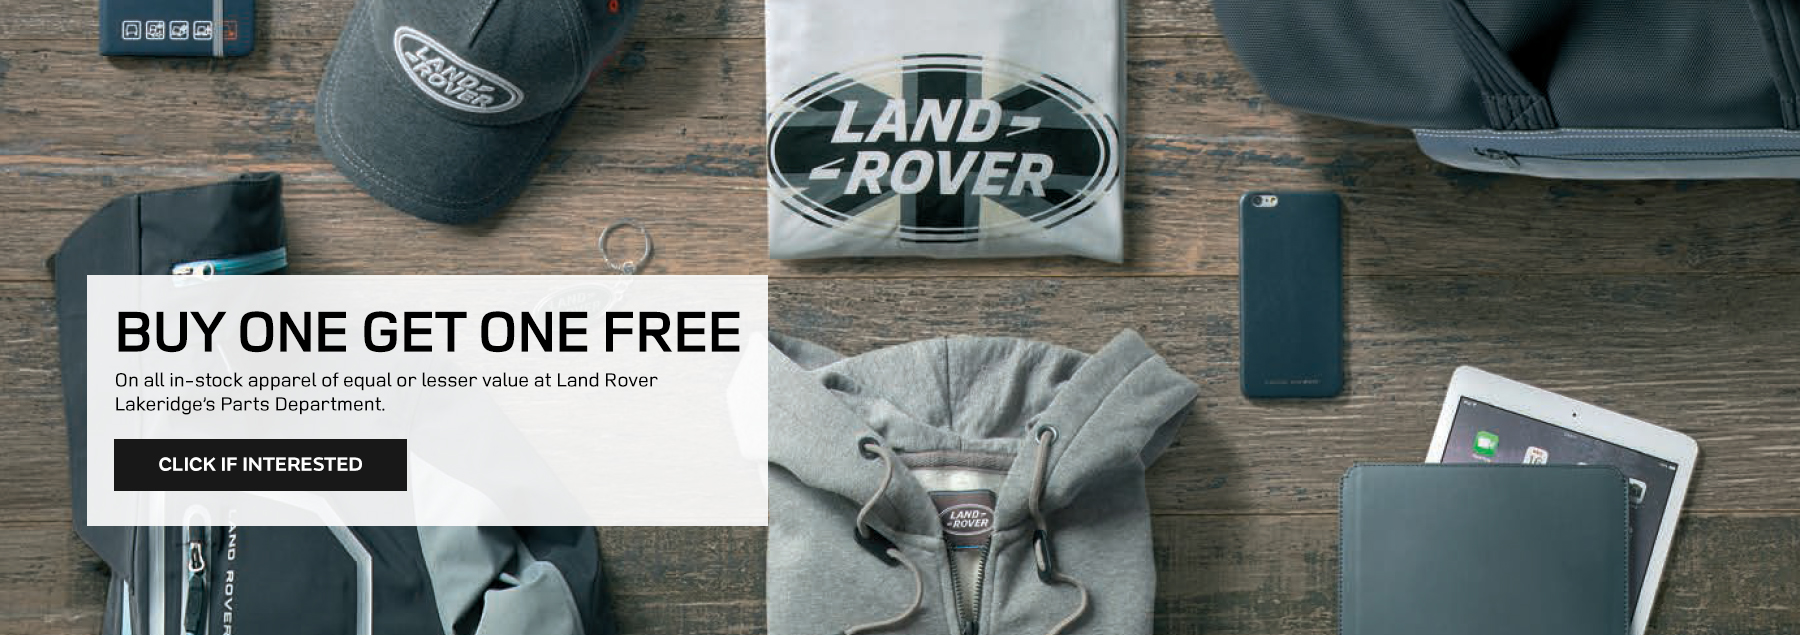 https://www.landroverlakeridge.ca/en/order-parts/